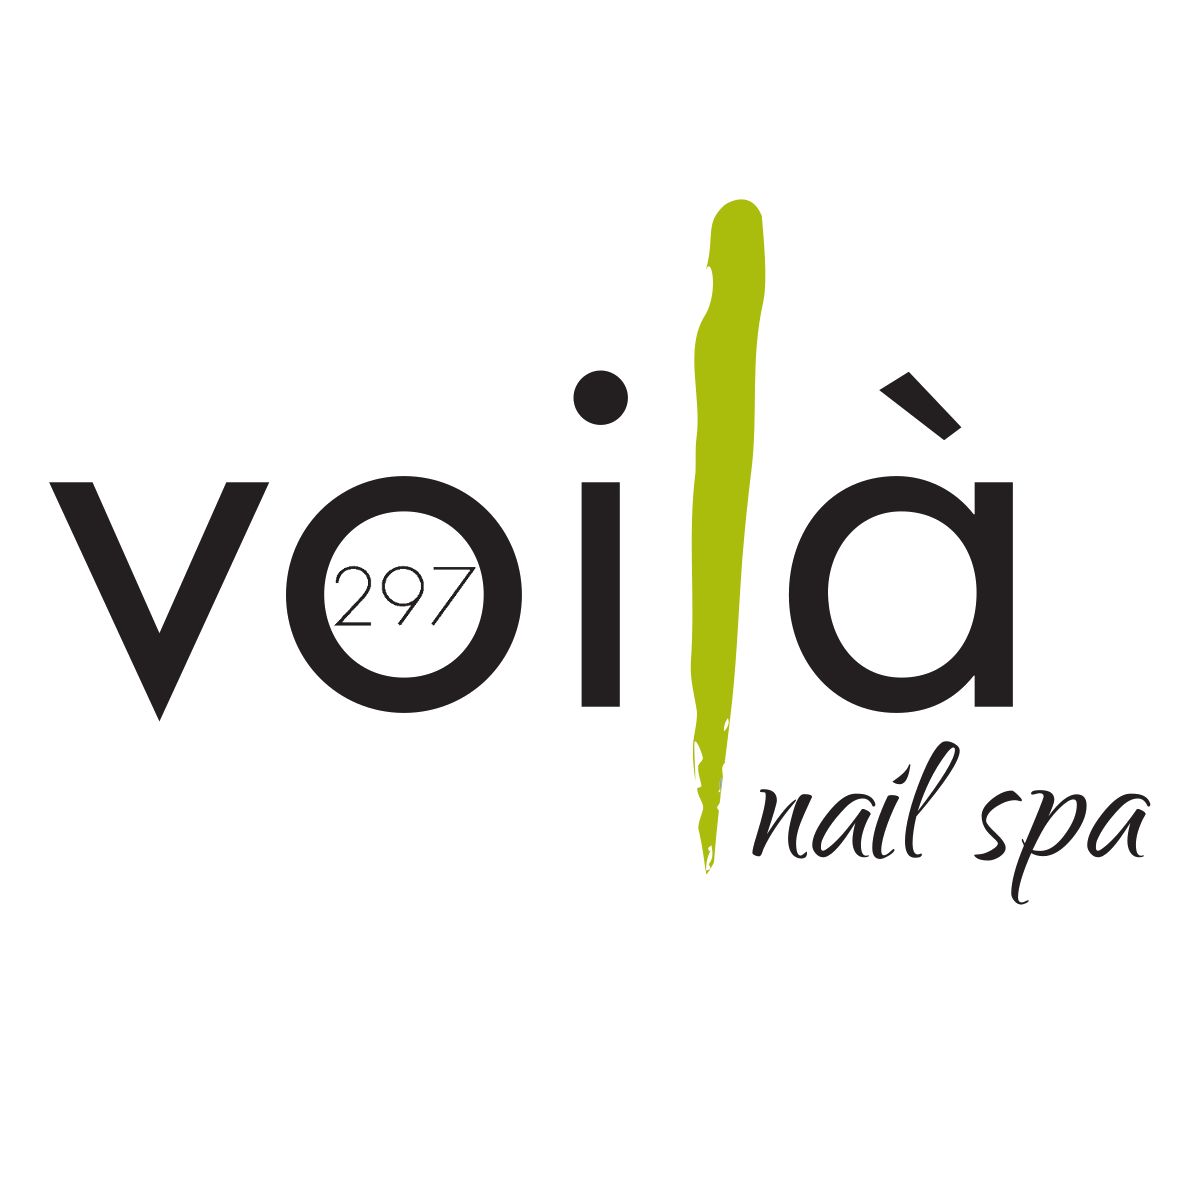 Permalink to:Voila Nail Spa